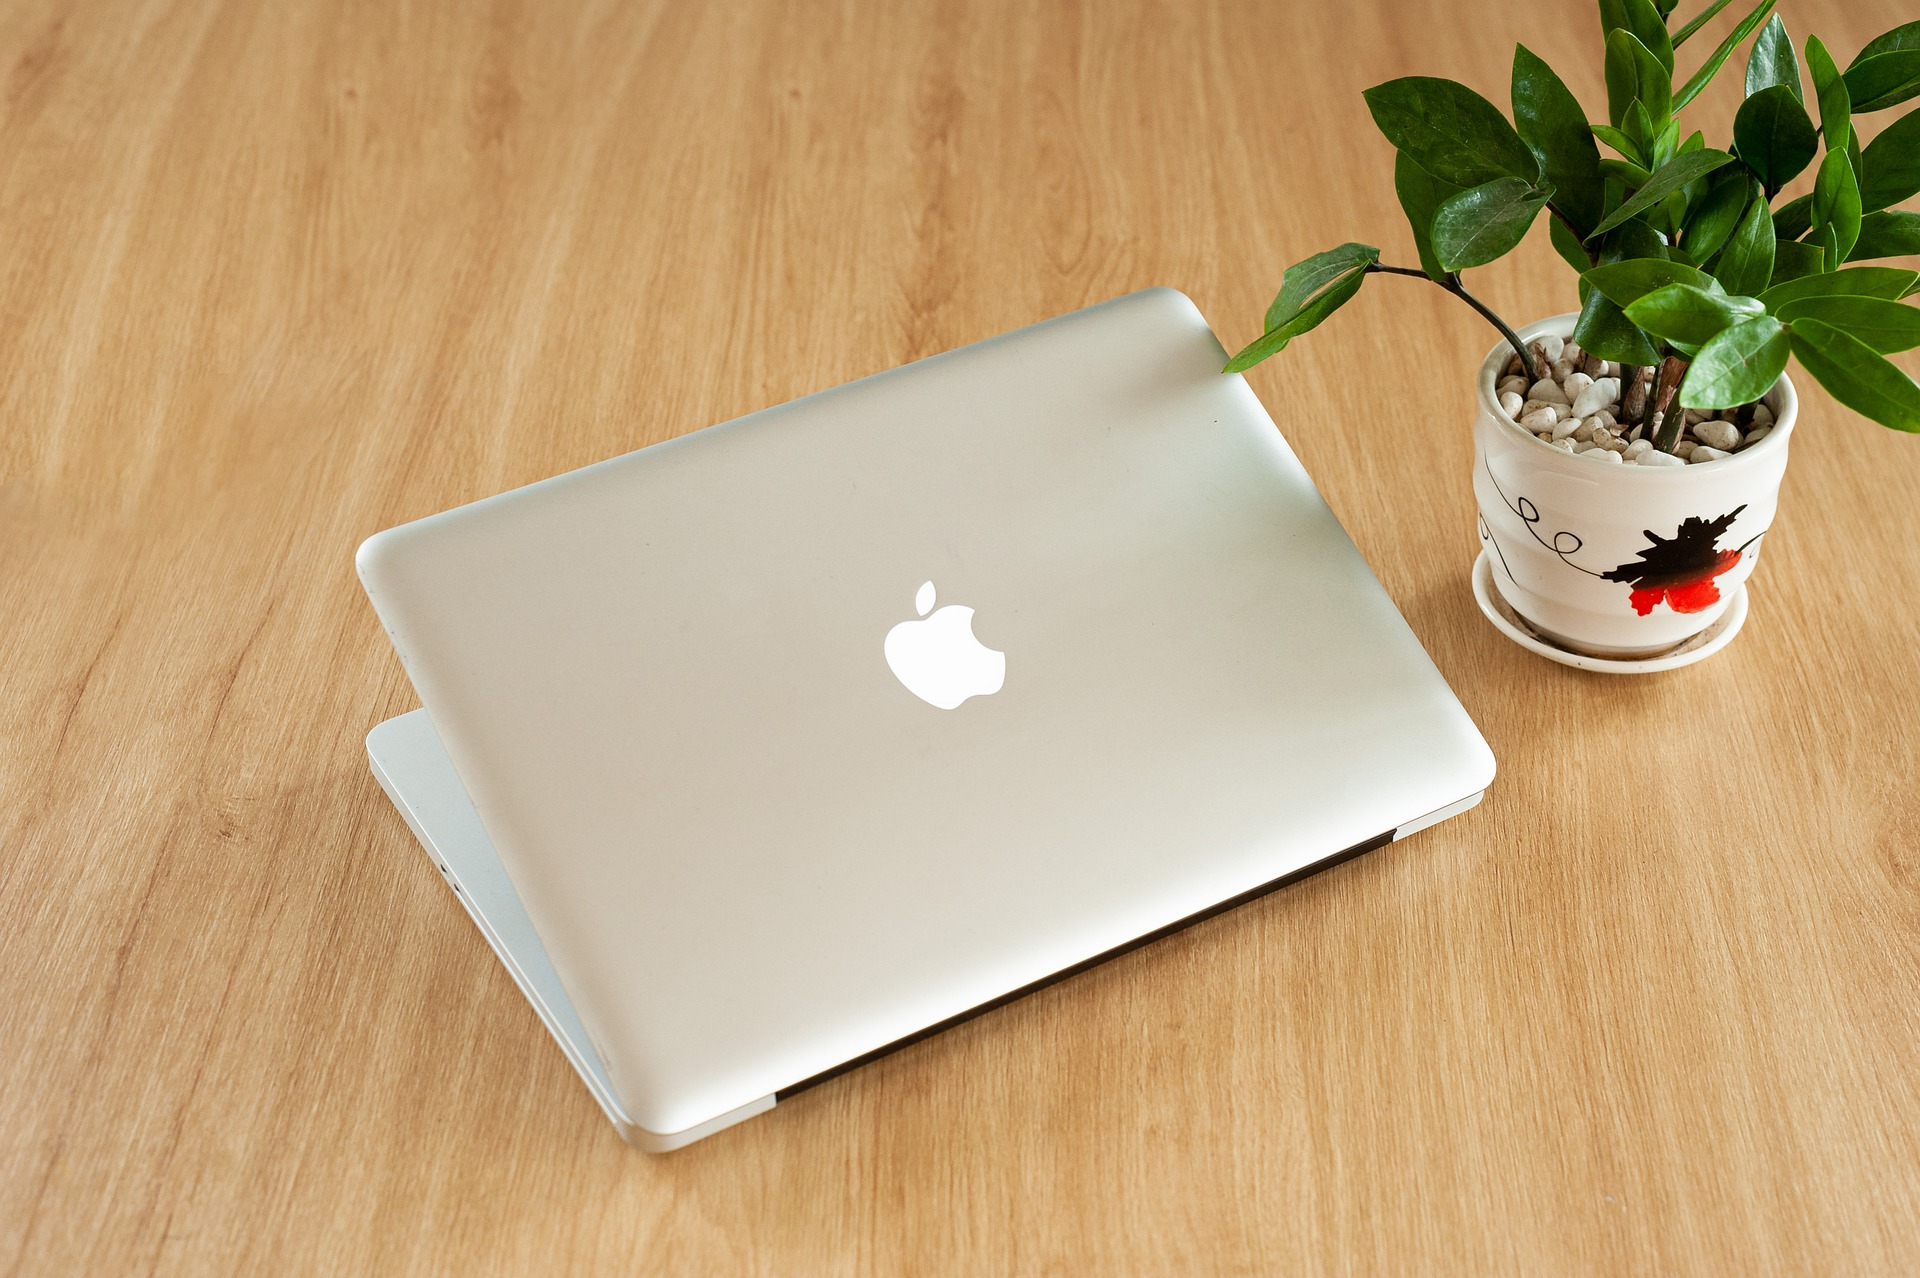 A plant and a laptop sitting on a table